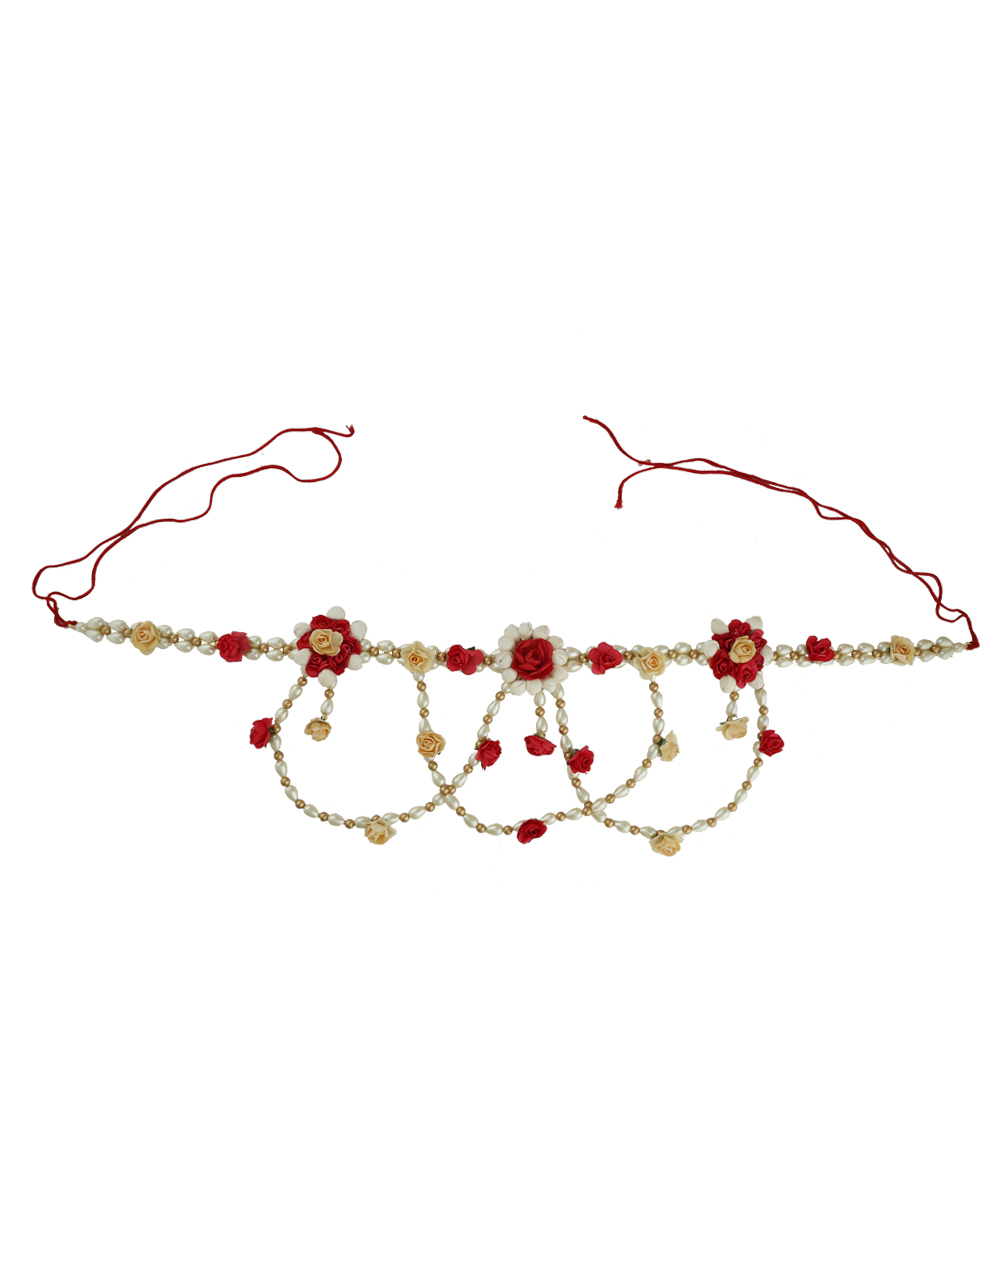 Fashionable Flower Jewellery Styled With Pearls Beads Fancy Necklace